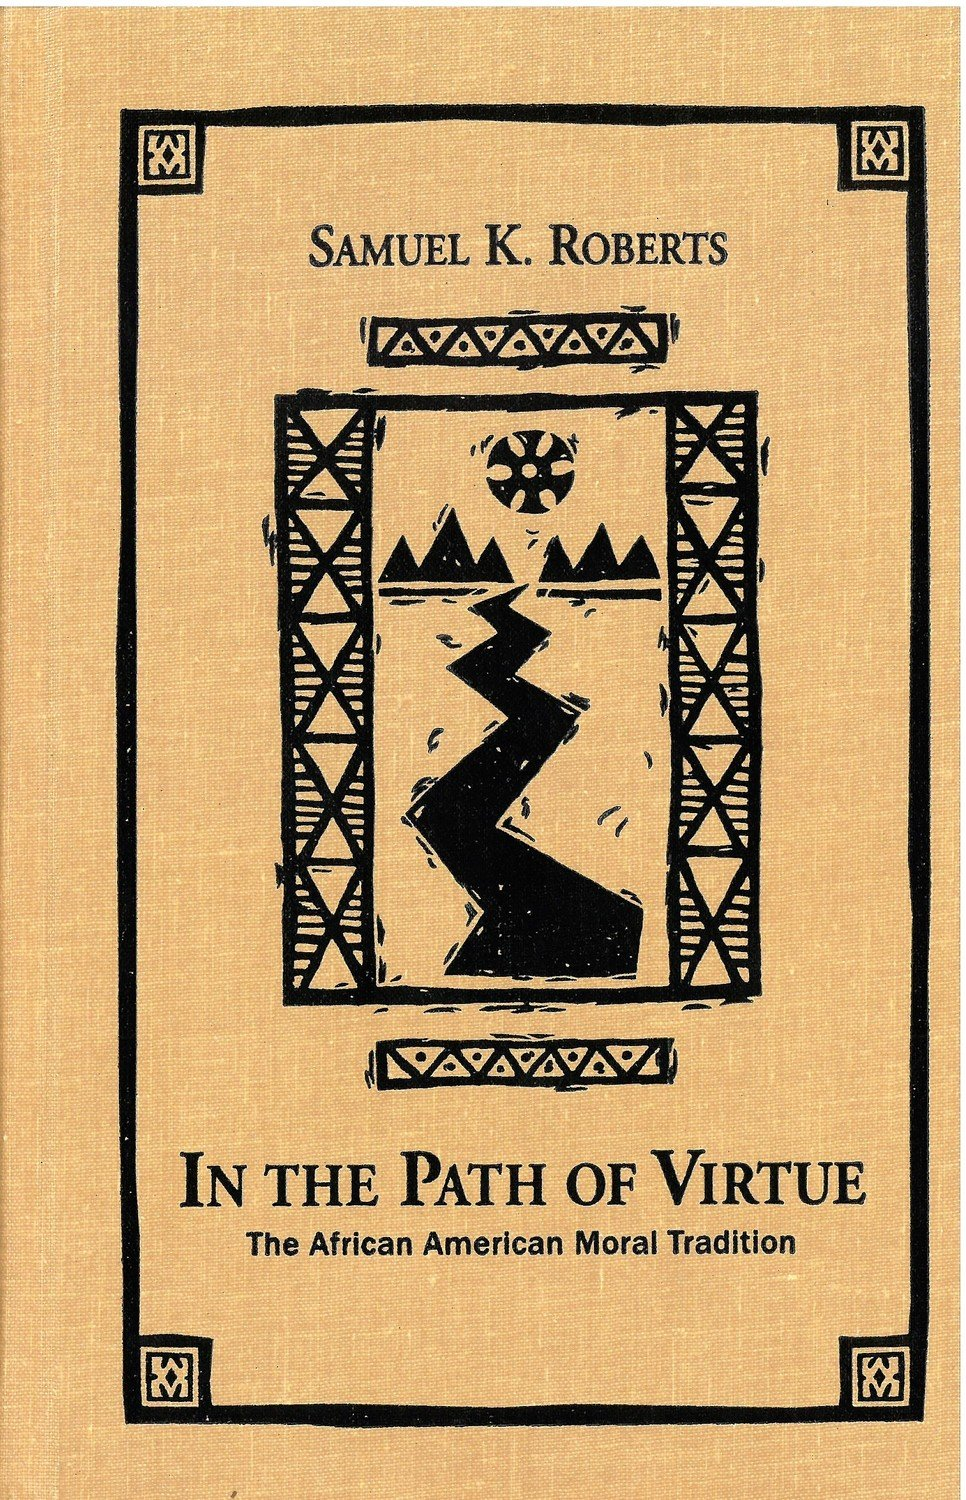 In the Path of Virtue: The African American Moral Tradition